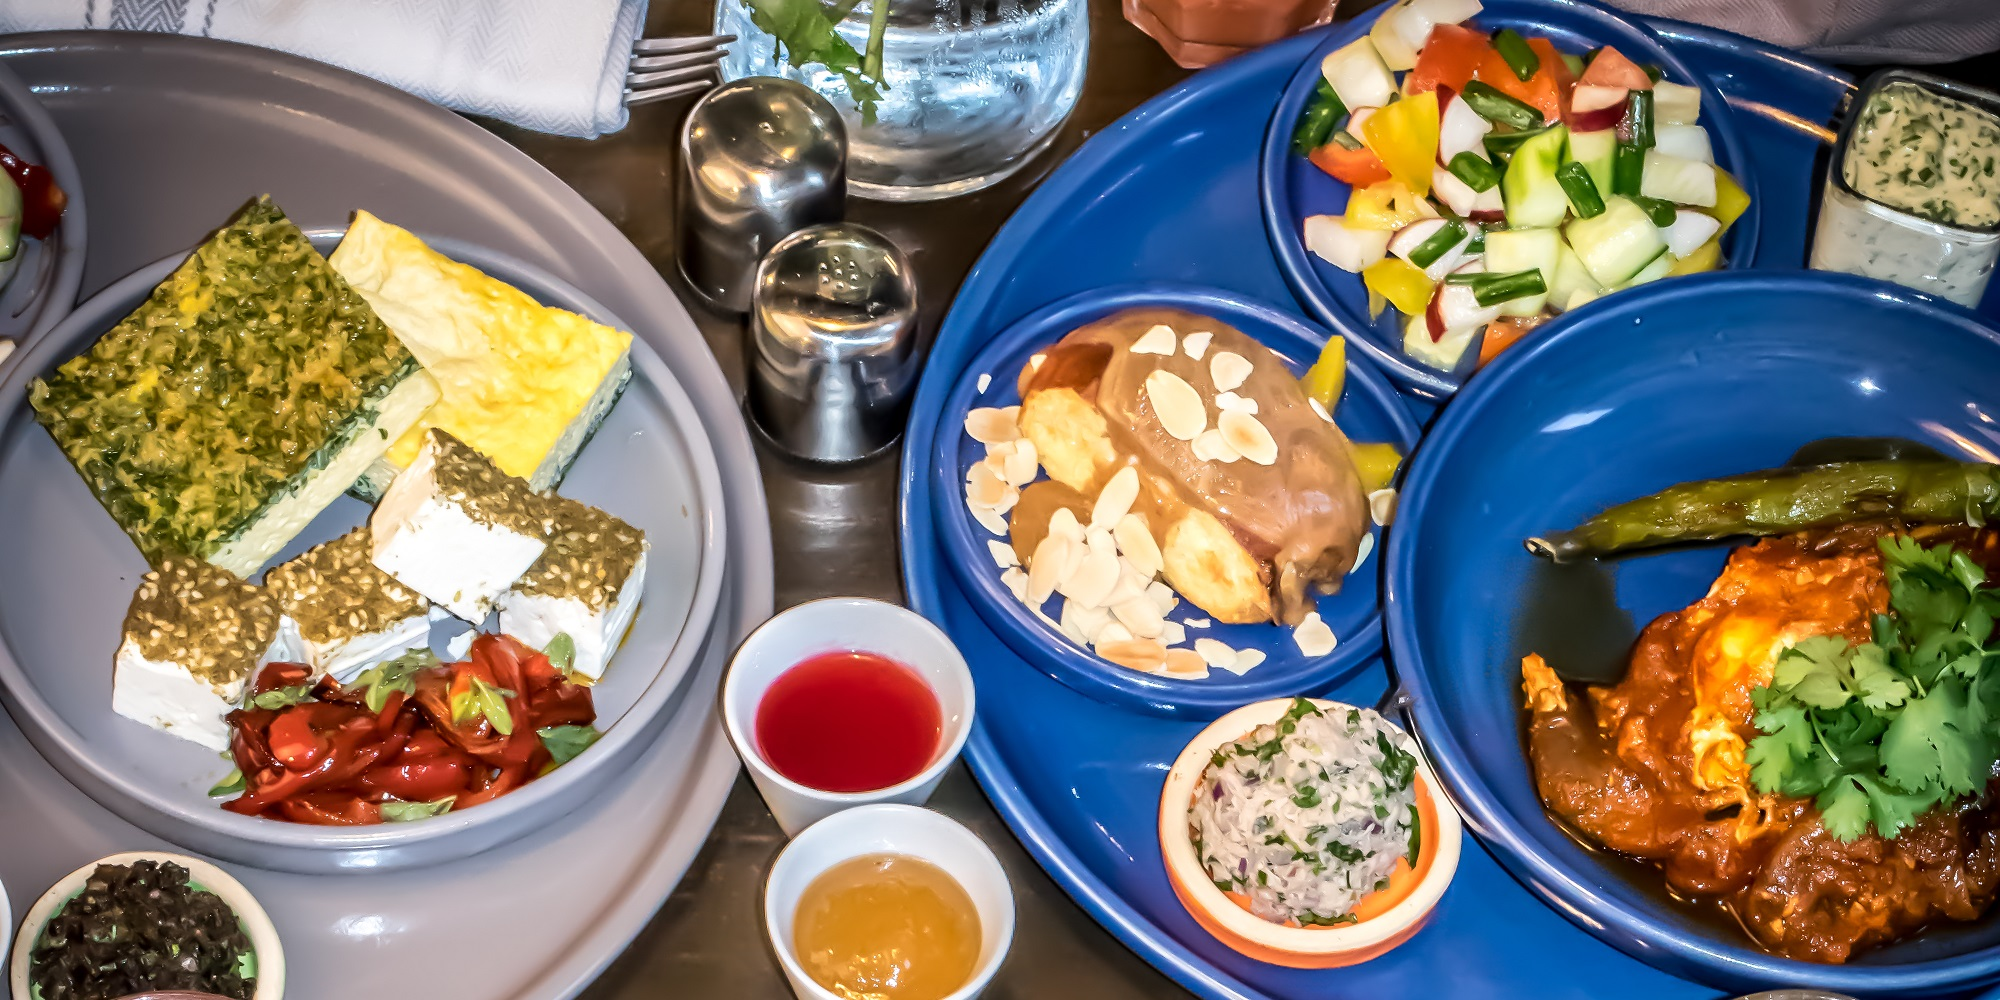 Brunch Else (75001 Paris)